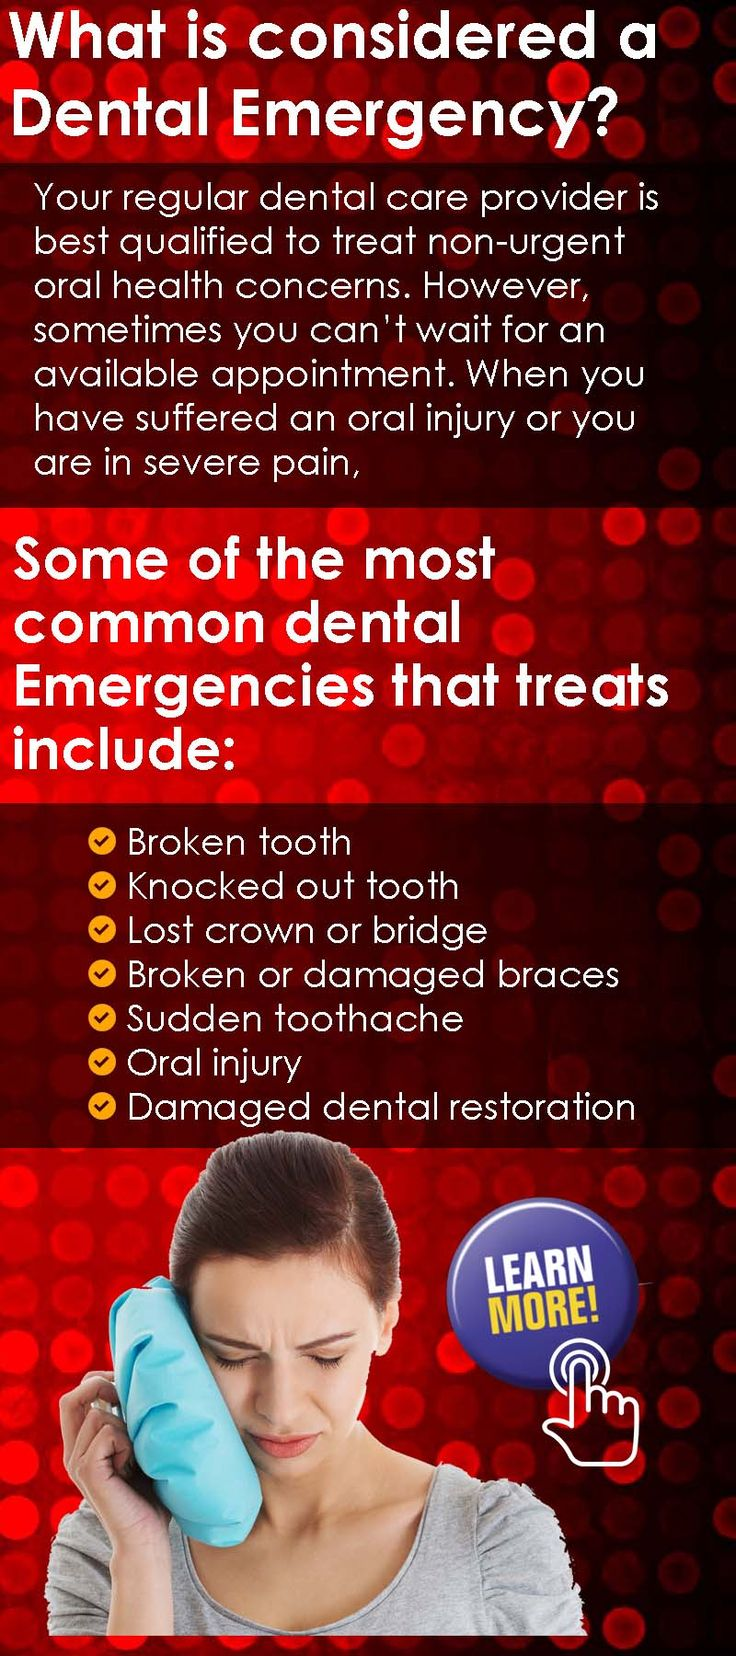 #EmergencyDental #Clinic at #Dental office in #Burlington in #Ontario #Canada provides quick & efficient dental treatments all 7 days of the week. Call 289-301-2424 #oralhealth #healthyliving